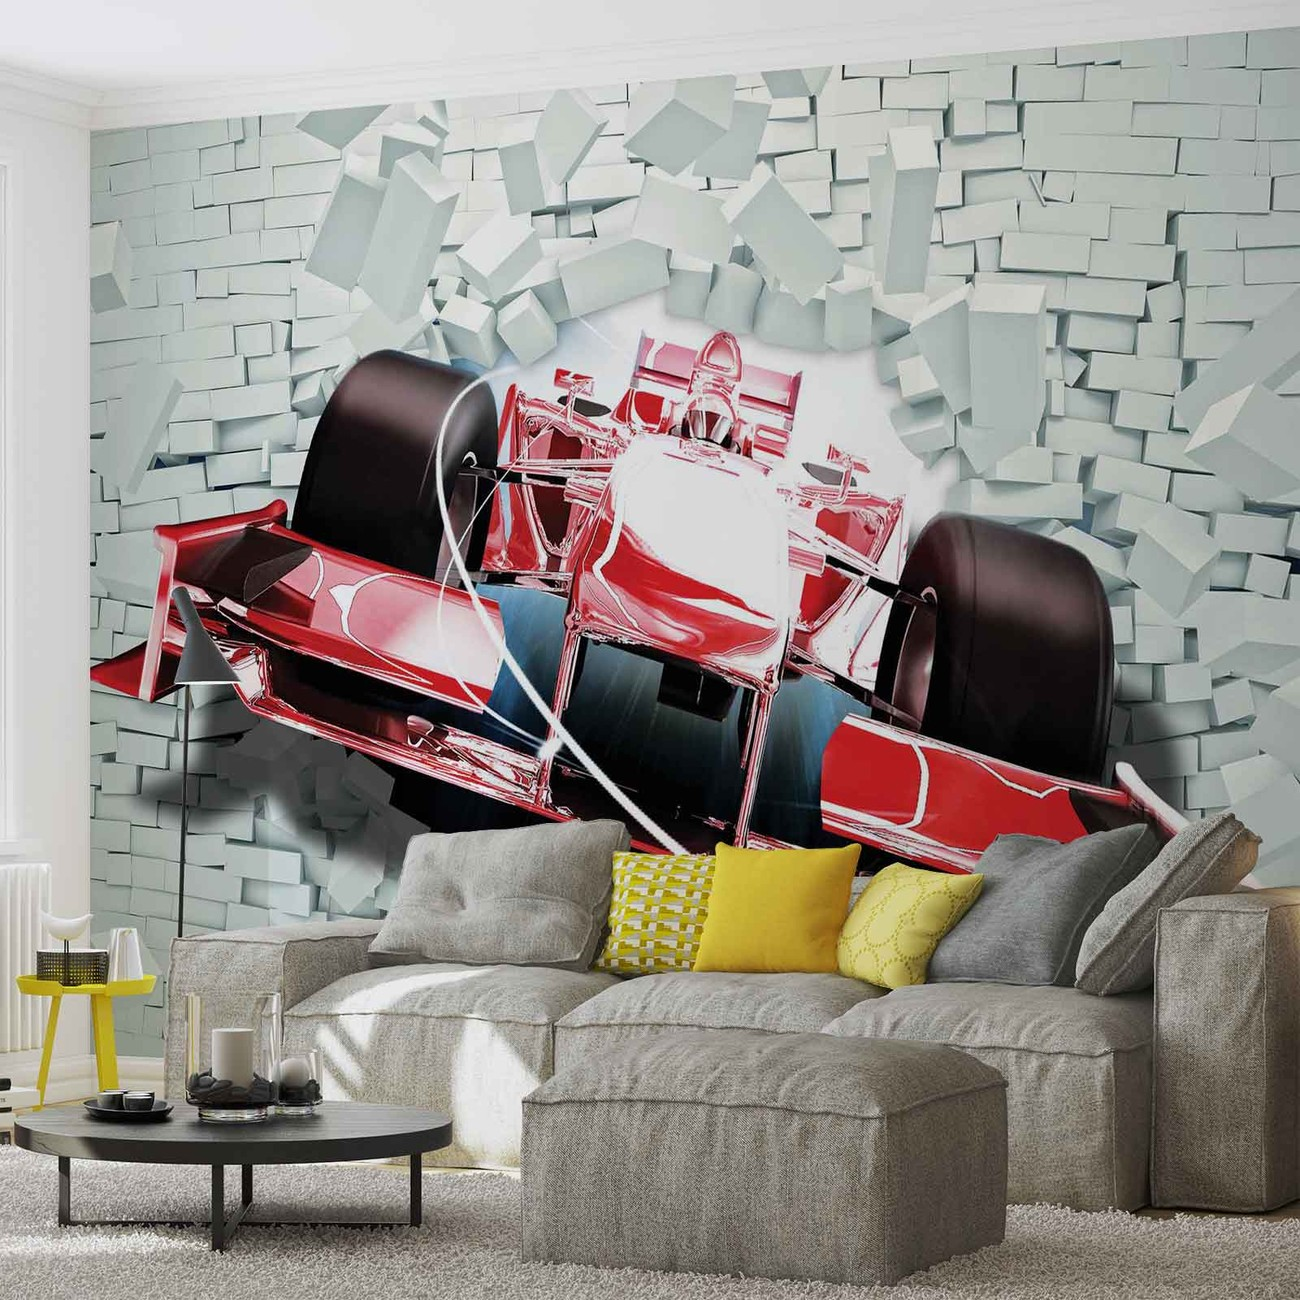 formula 1 racing essay Essay formula 1 racing  formula one racing is one of the most revered sports in the world in the auto-racing world it is second to none in class, prestige, history, and skill.